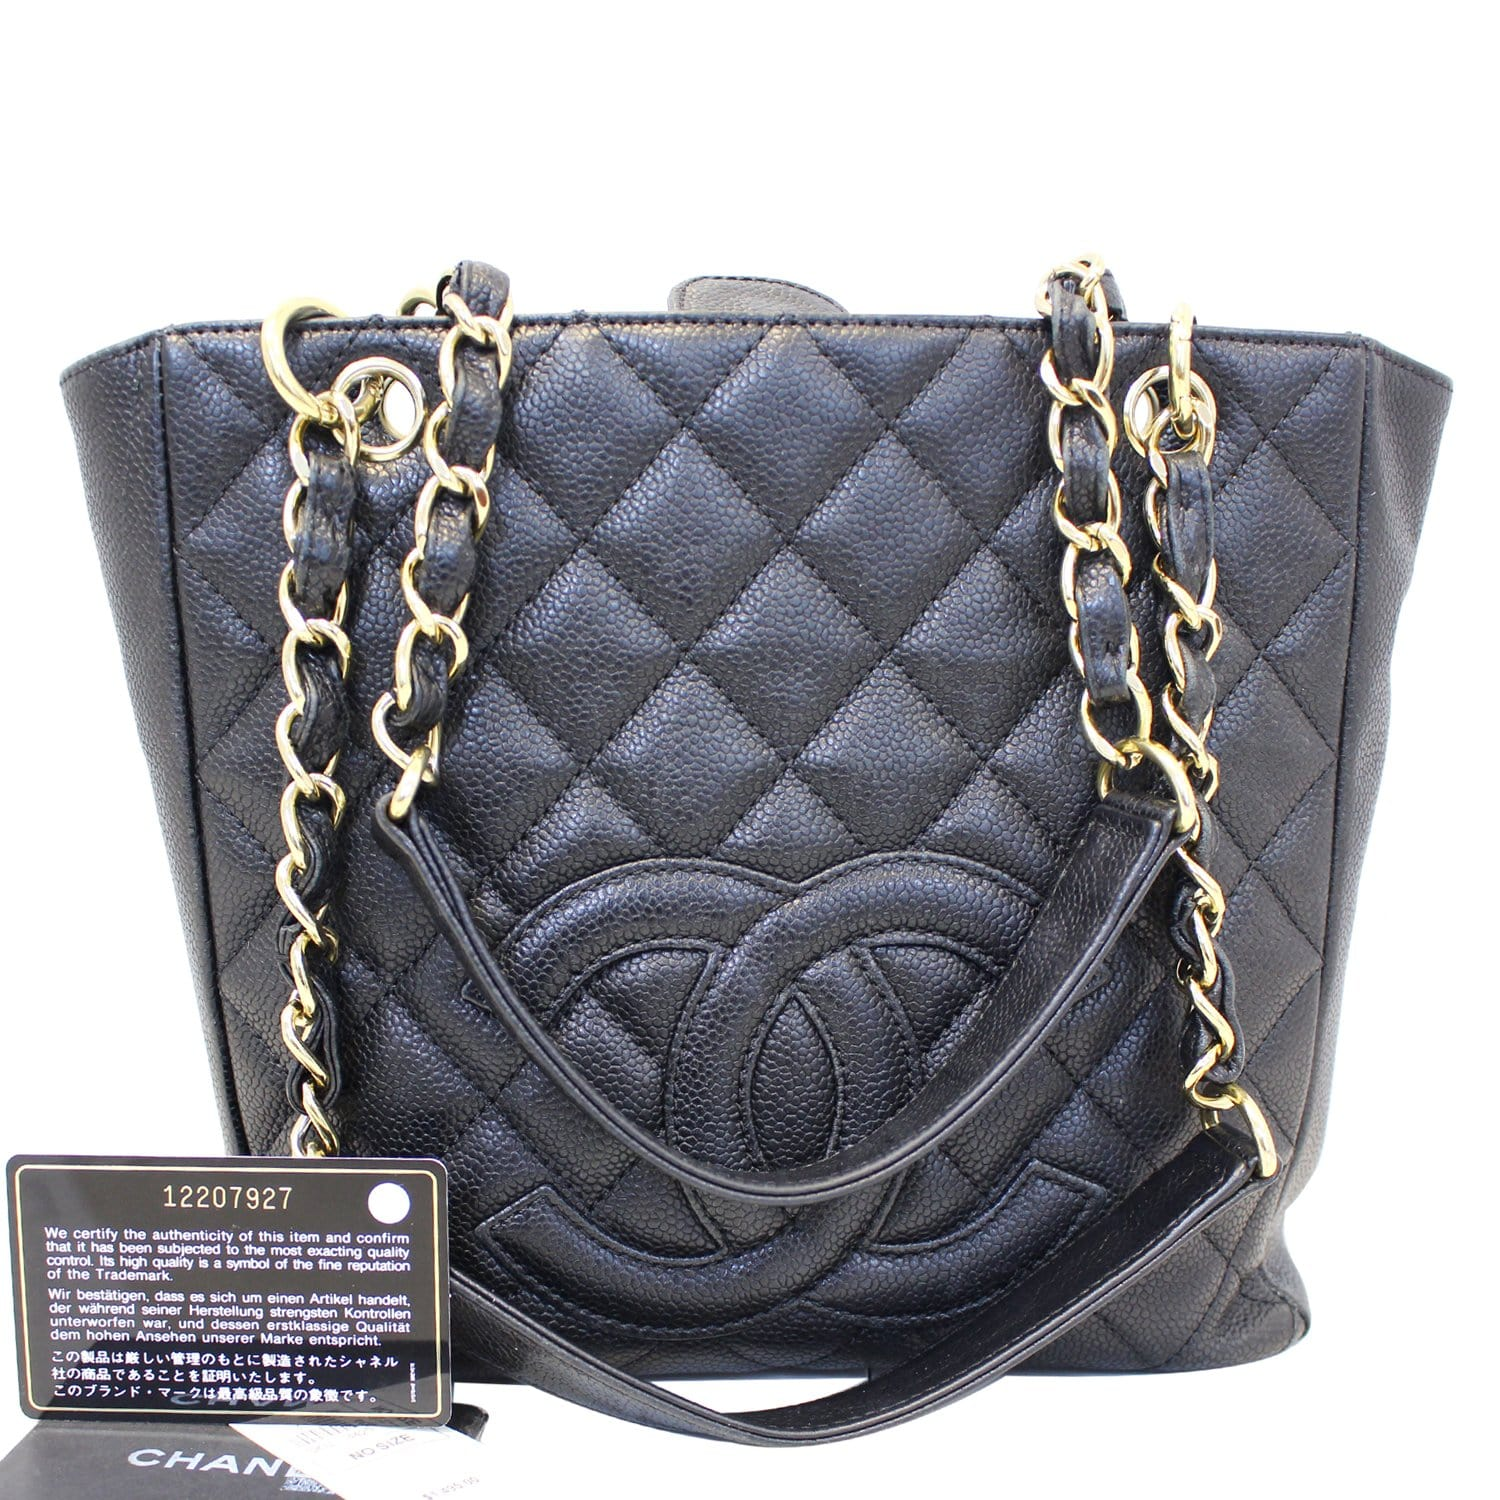 4af89adf8bf CHANEL PST Petit Shopping Caviar Leather Tote Bag Black-US